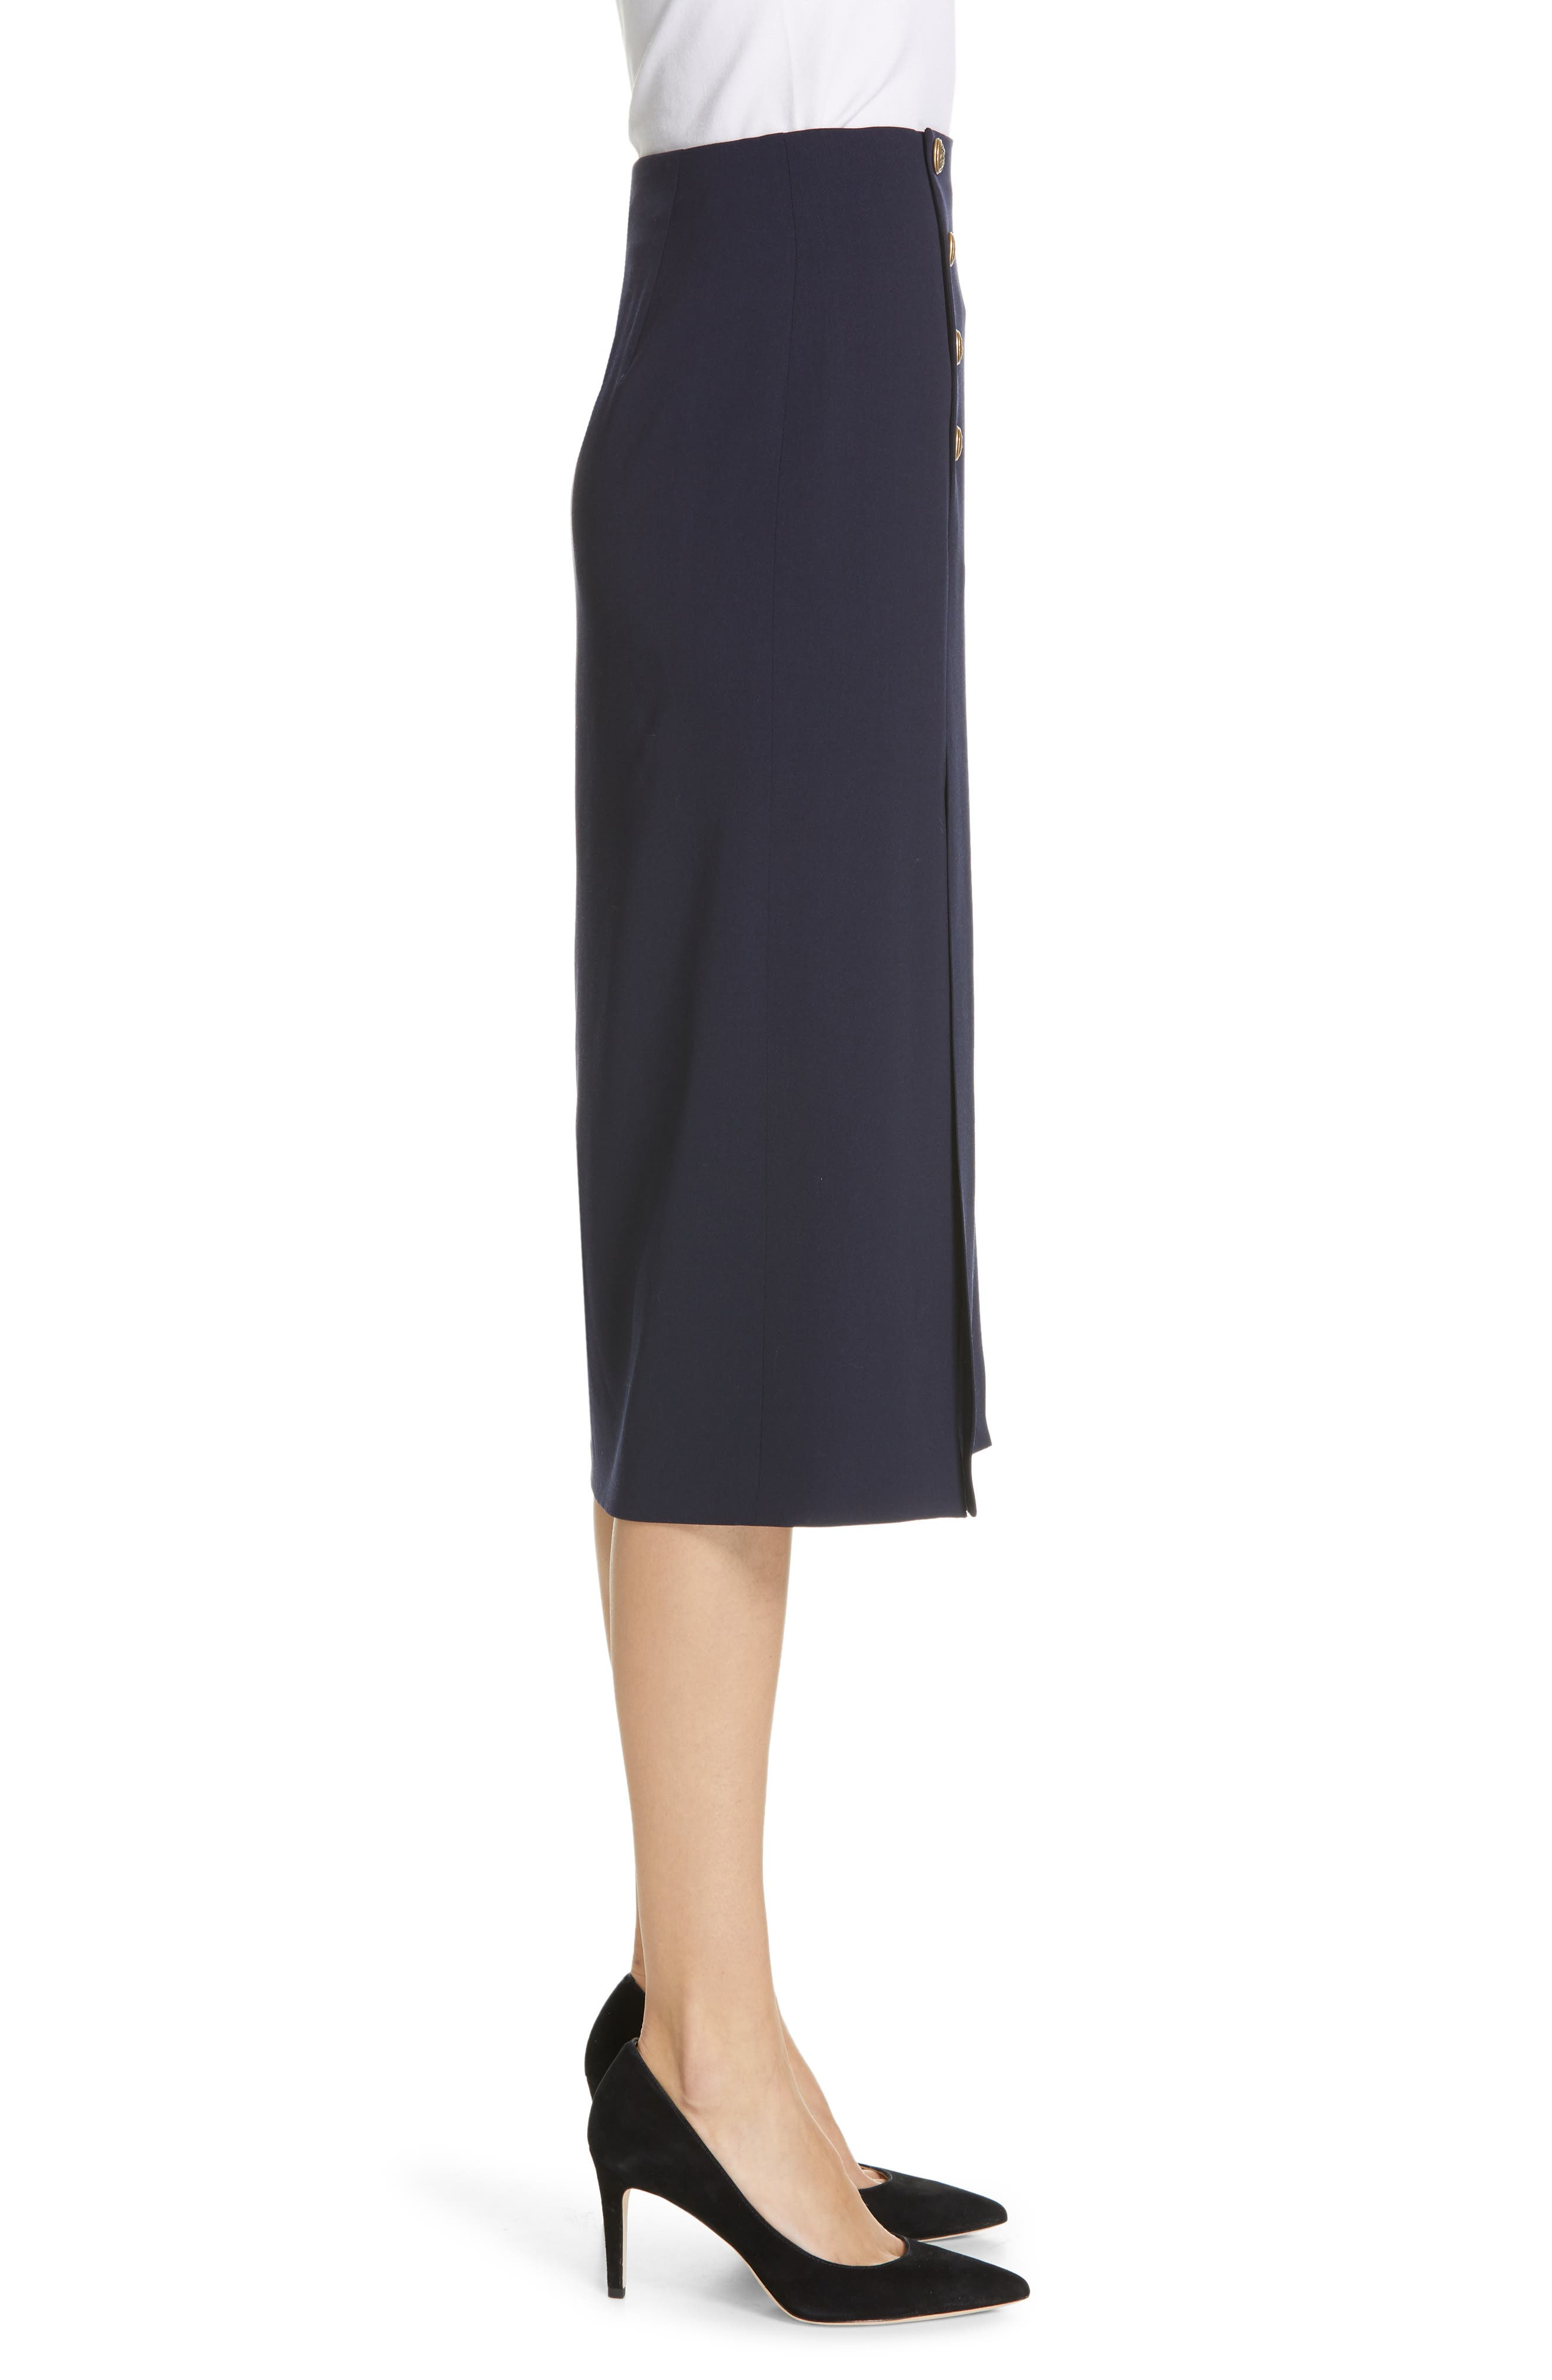 POLO RALPH LAUREN, A-Line Skirt, Alternate thumbnail 3, color, NAVY